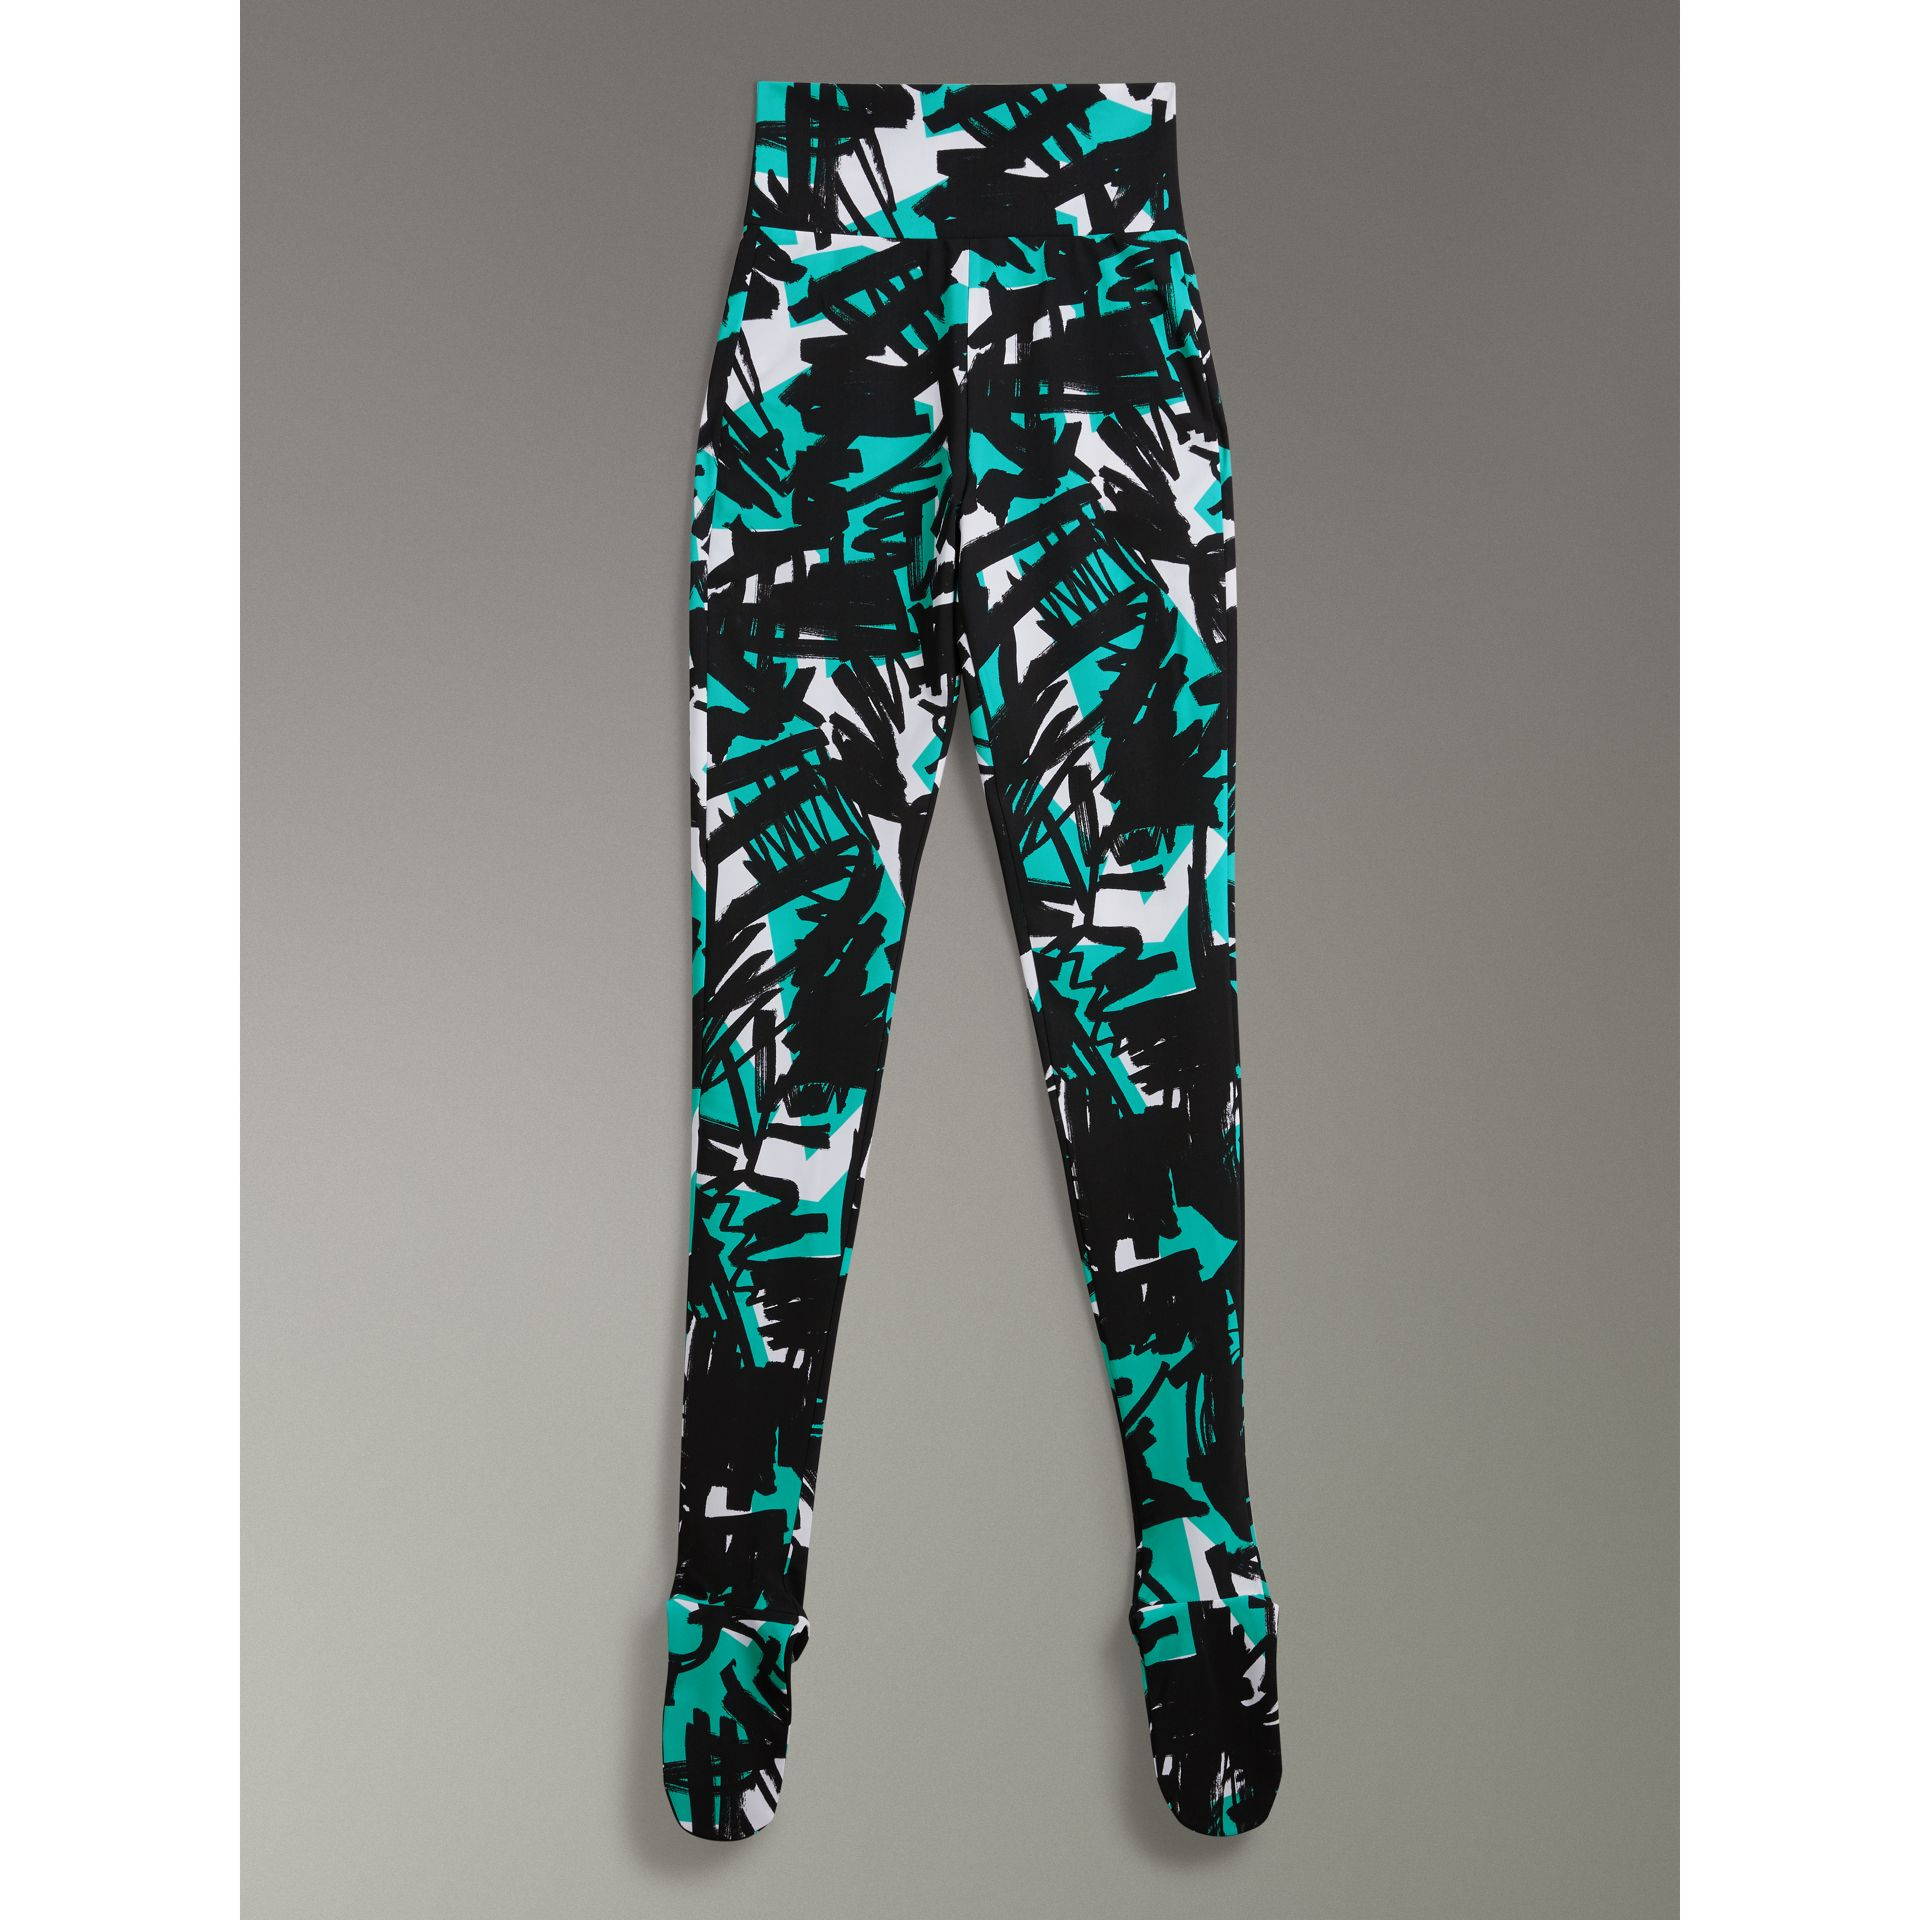 Graffiti Print Leggings in Turquoise - Women | Burberry Singapore - gallery image 3